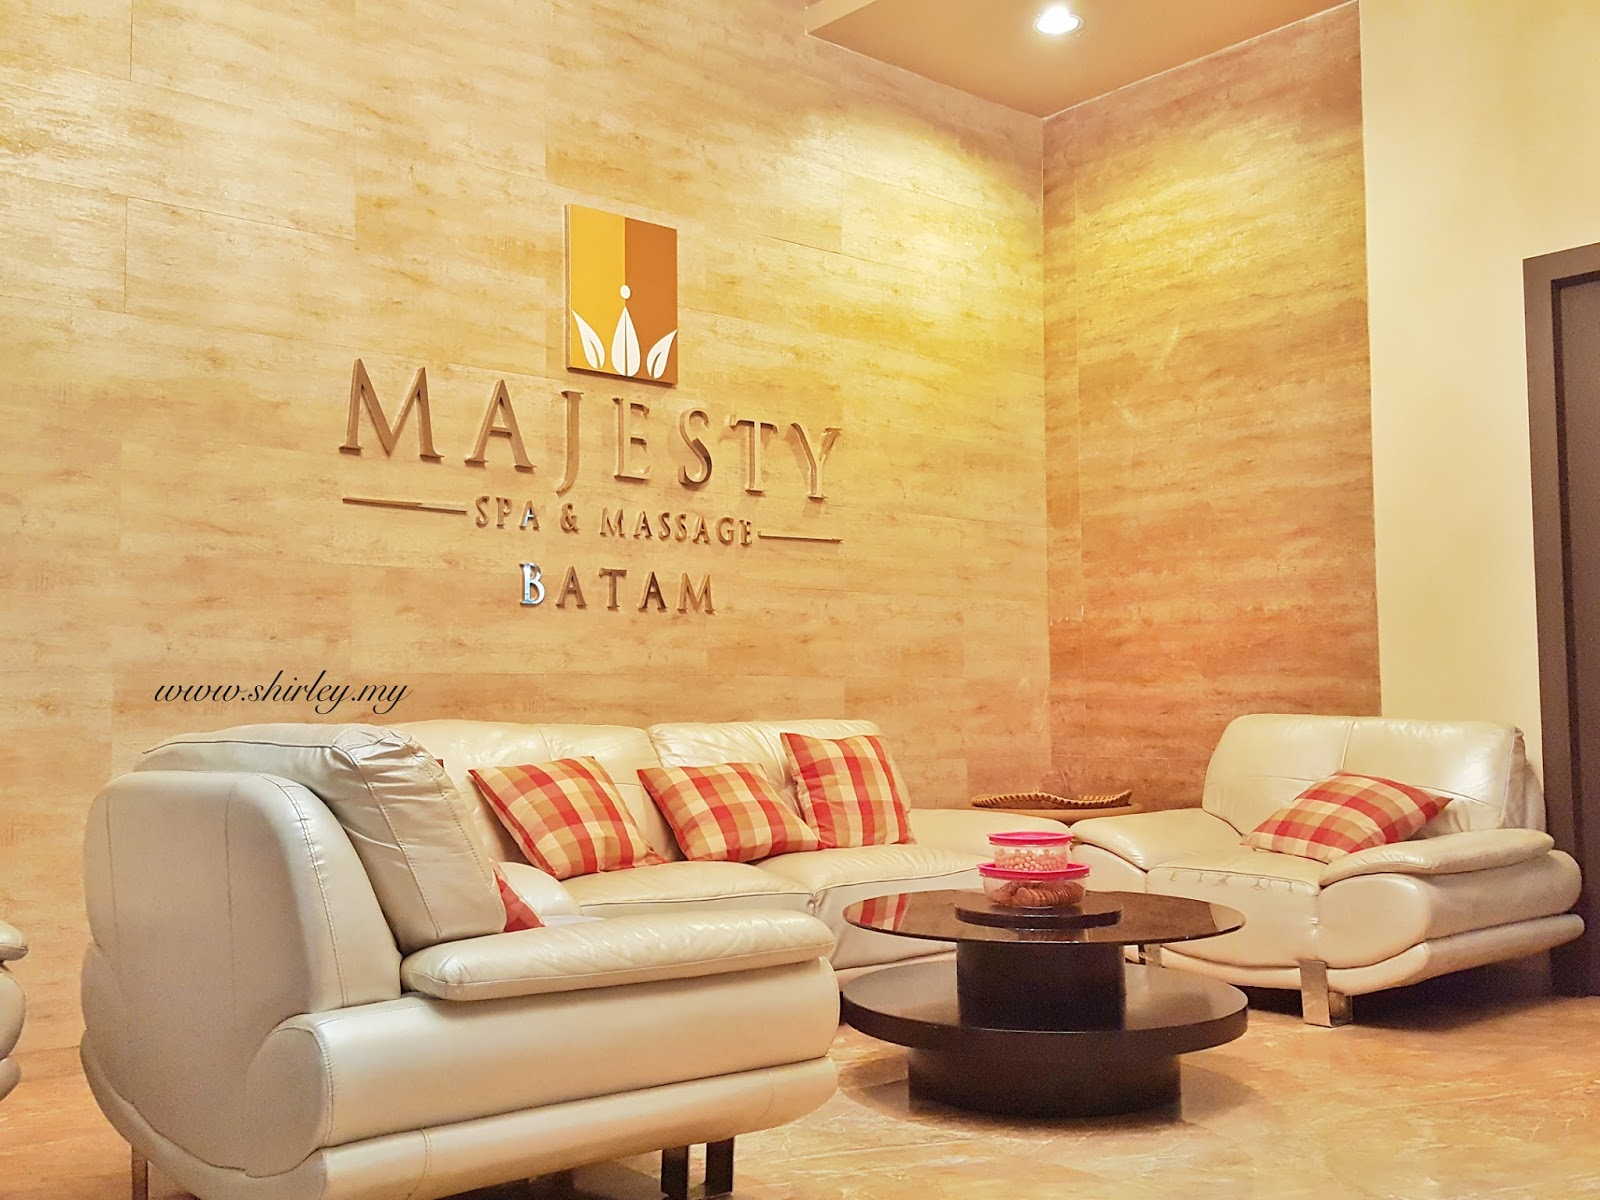 Majesty Spa & Massage, Batam, Indonesia - Shirley my